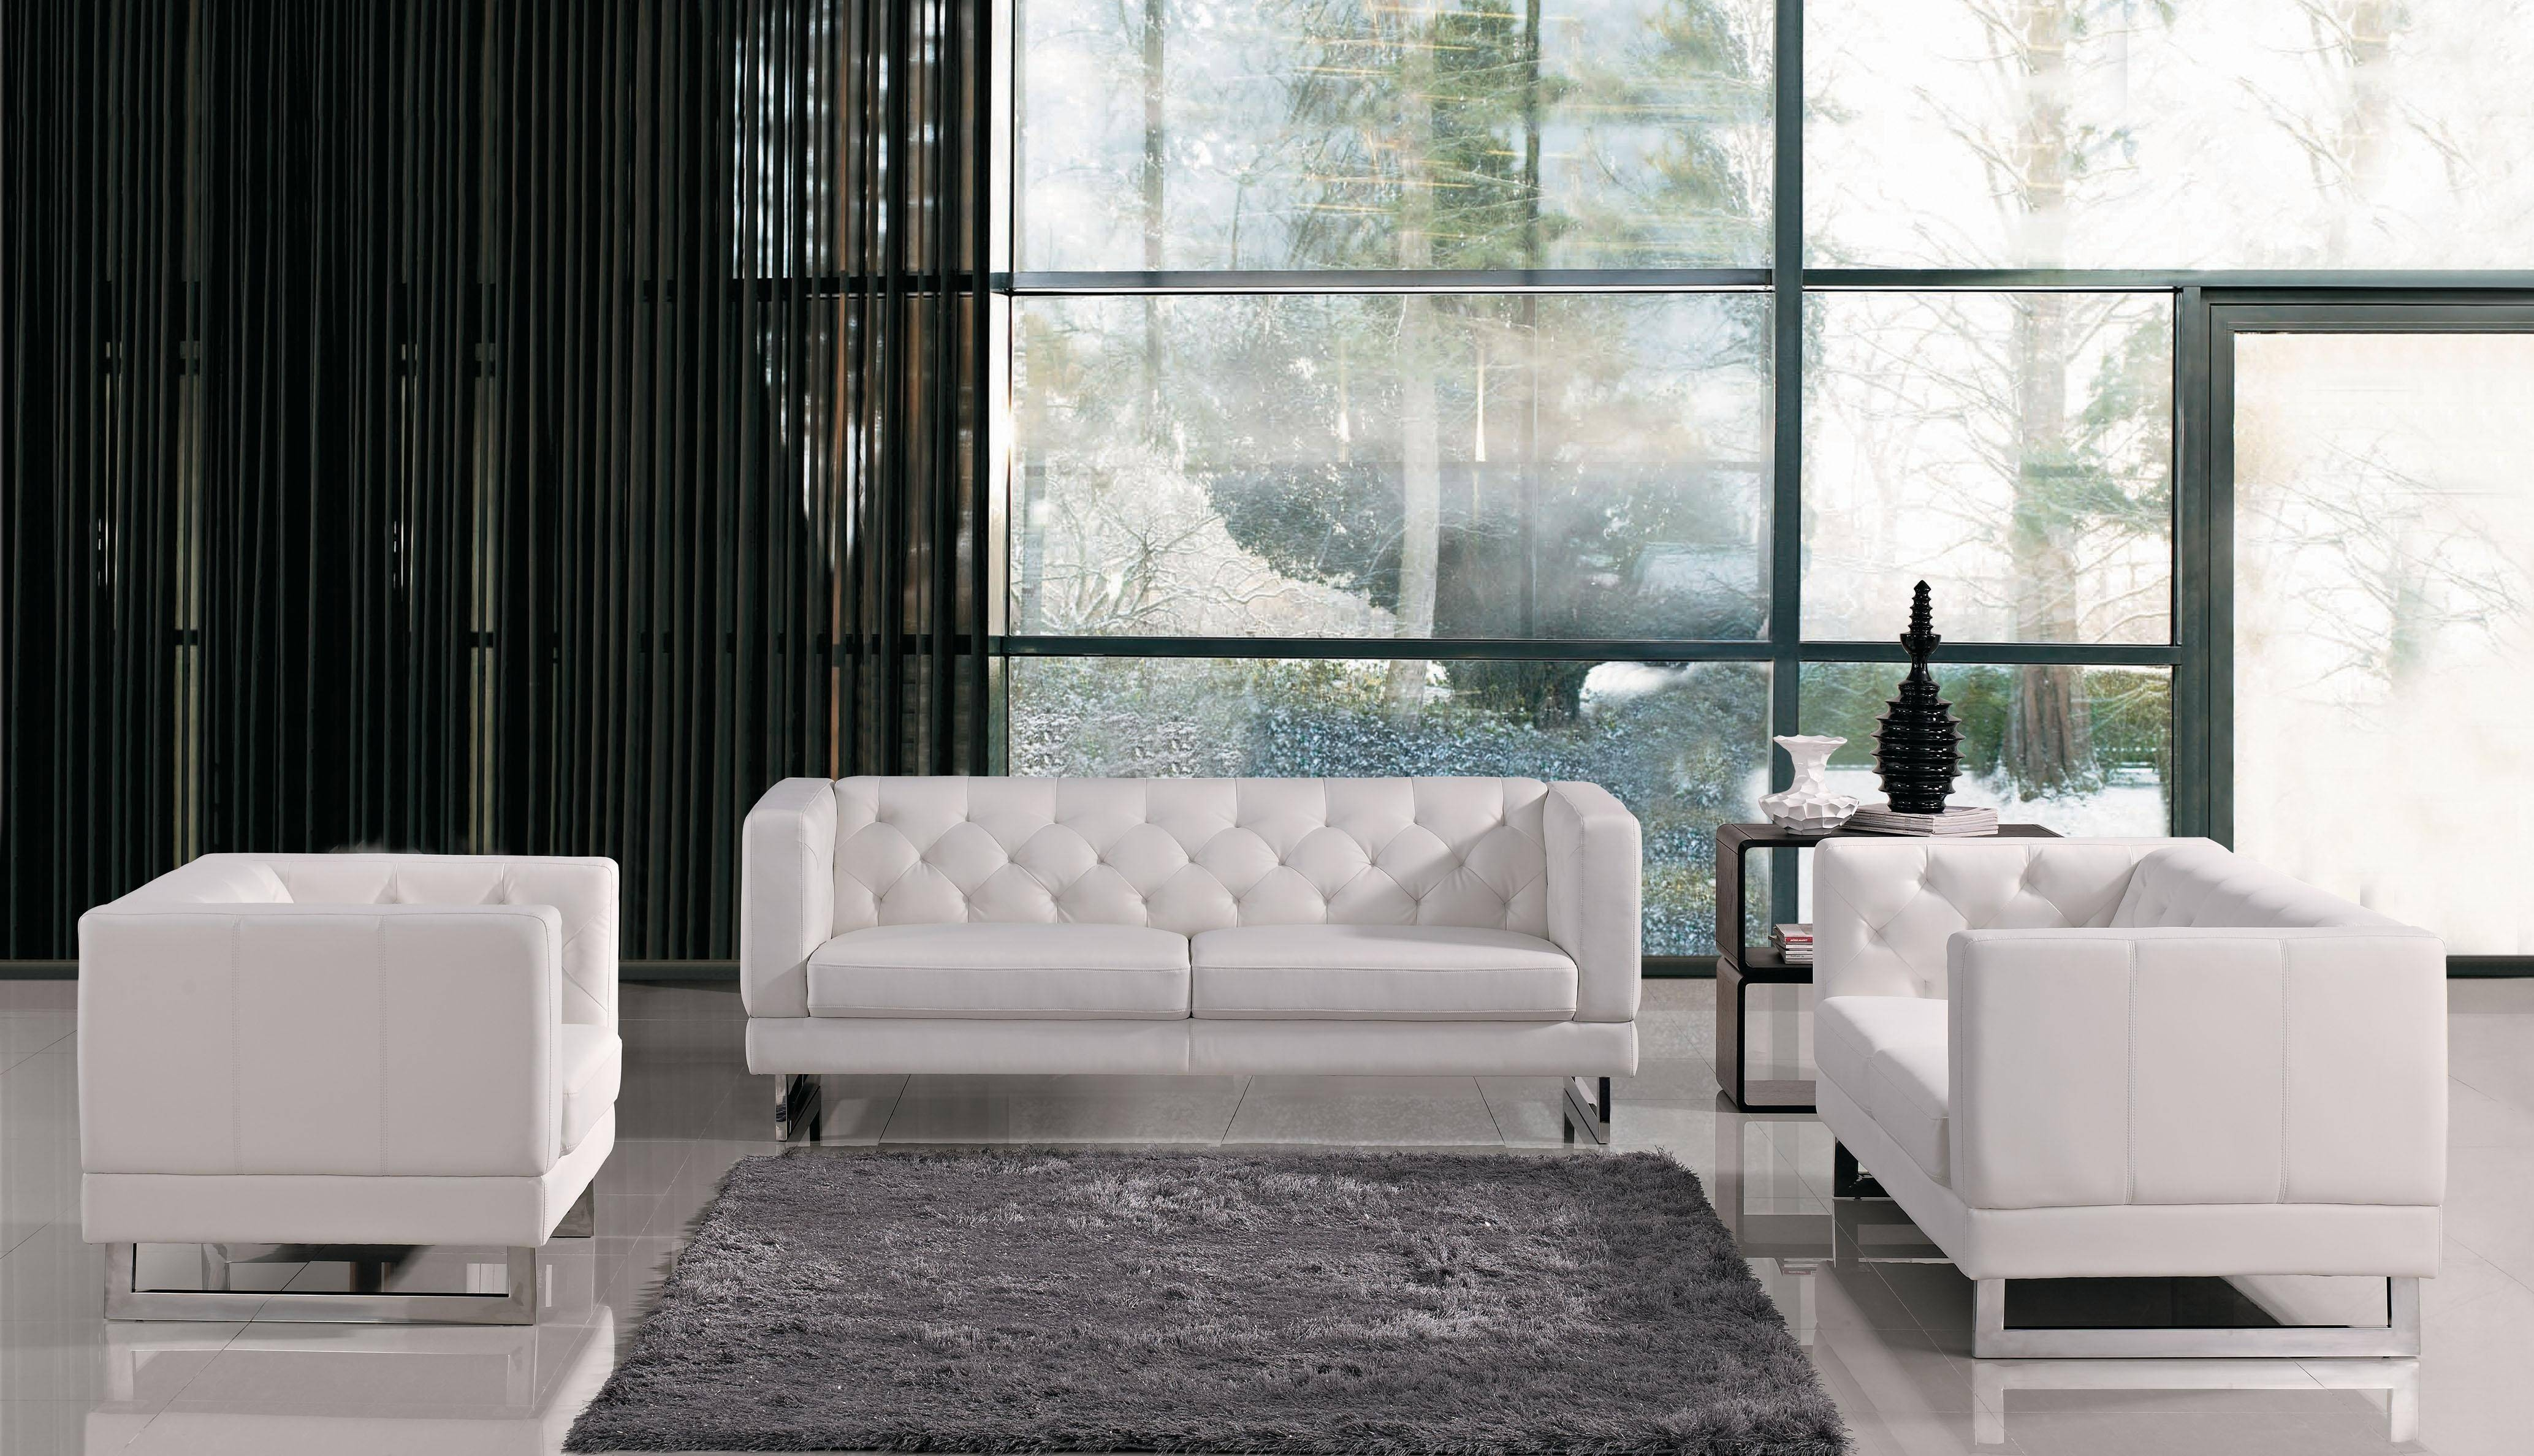 Sofas Center : Modern White Leather Sleeperfa Contemporary within Long Modern Sofas (Image 27 of 30)